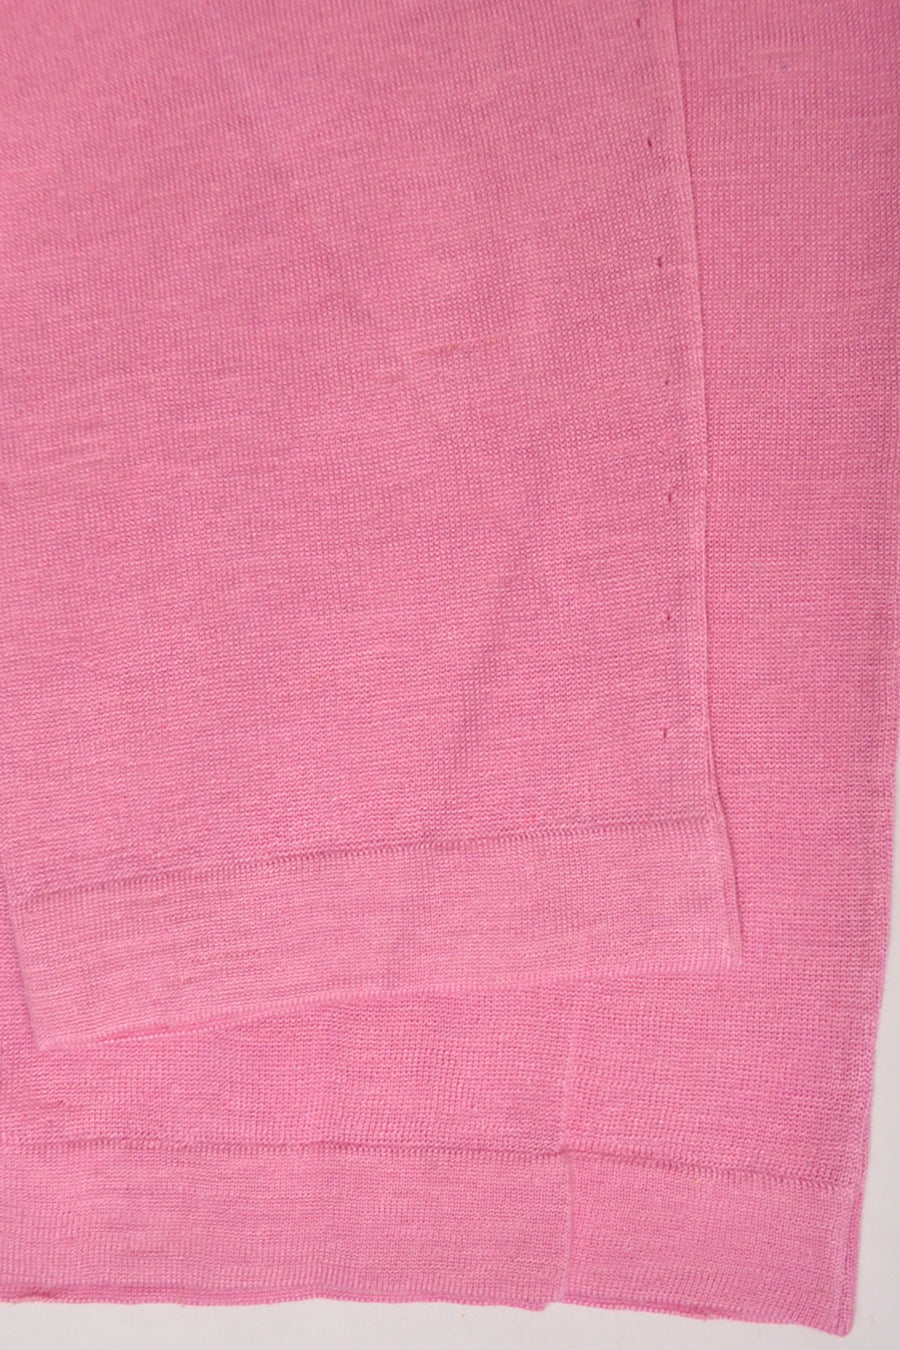 Kiton Sweater Linen Silk Light Pink Crew Neck M / 50 SALE